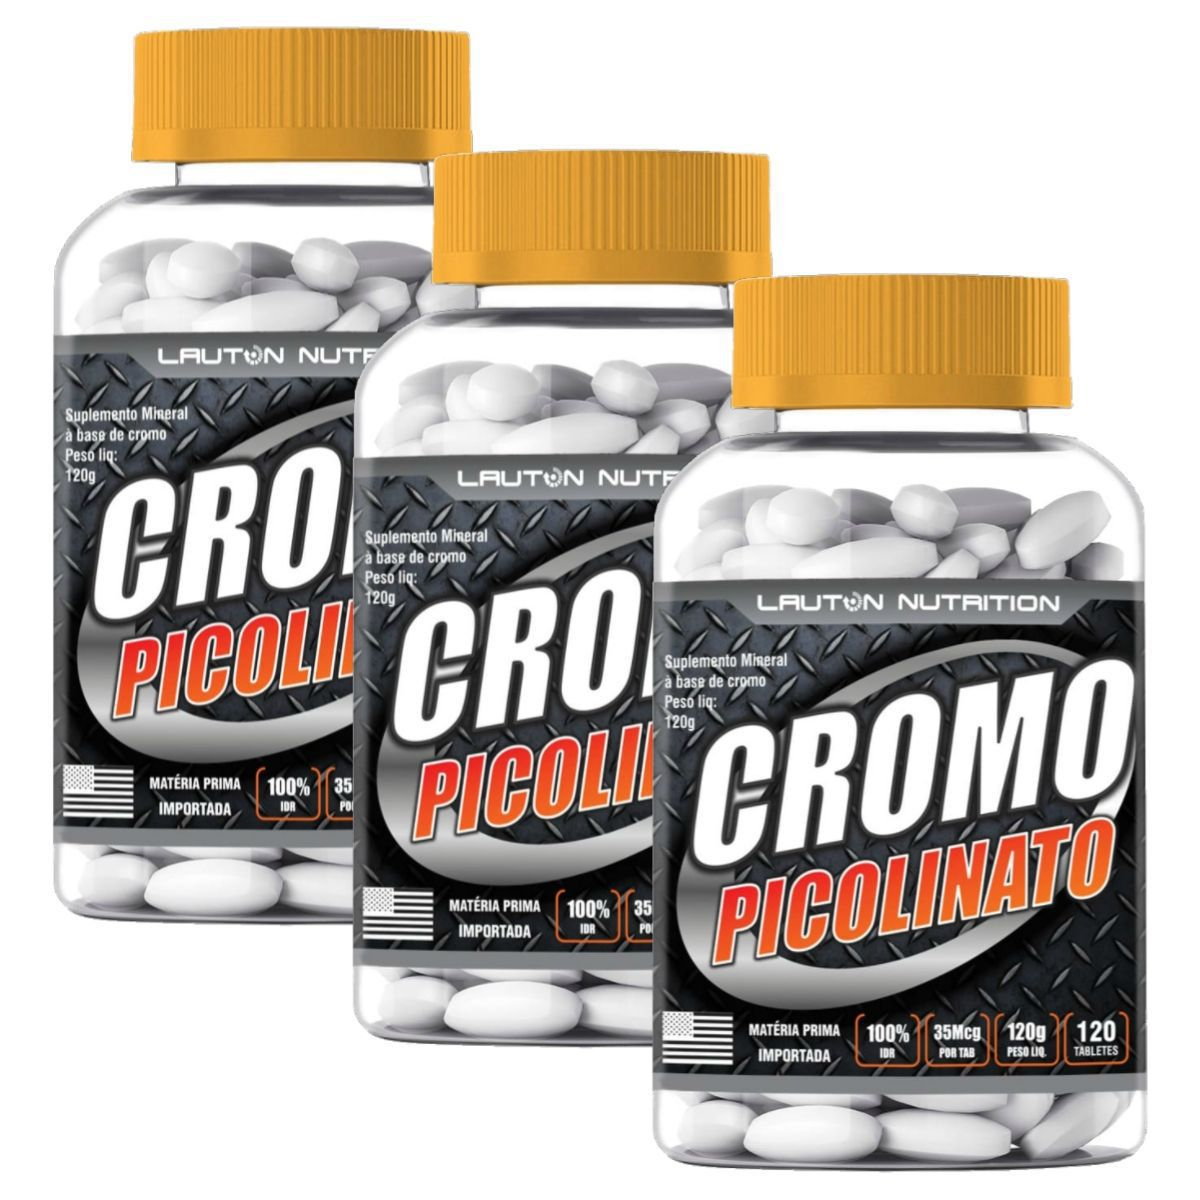 Kit 3 Picolinato de Cromo Lauton Nutrition - 120 Comp 1000mg